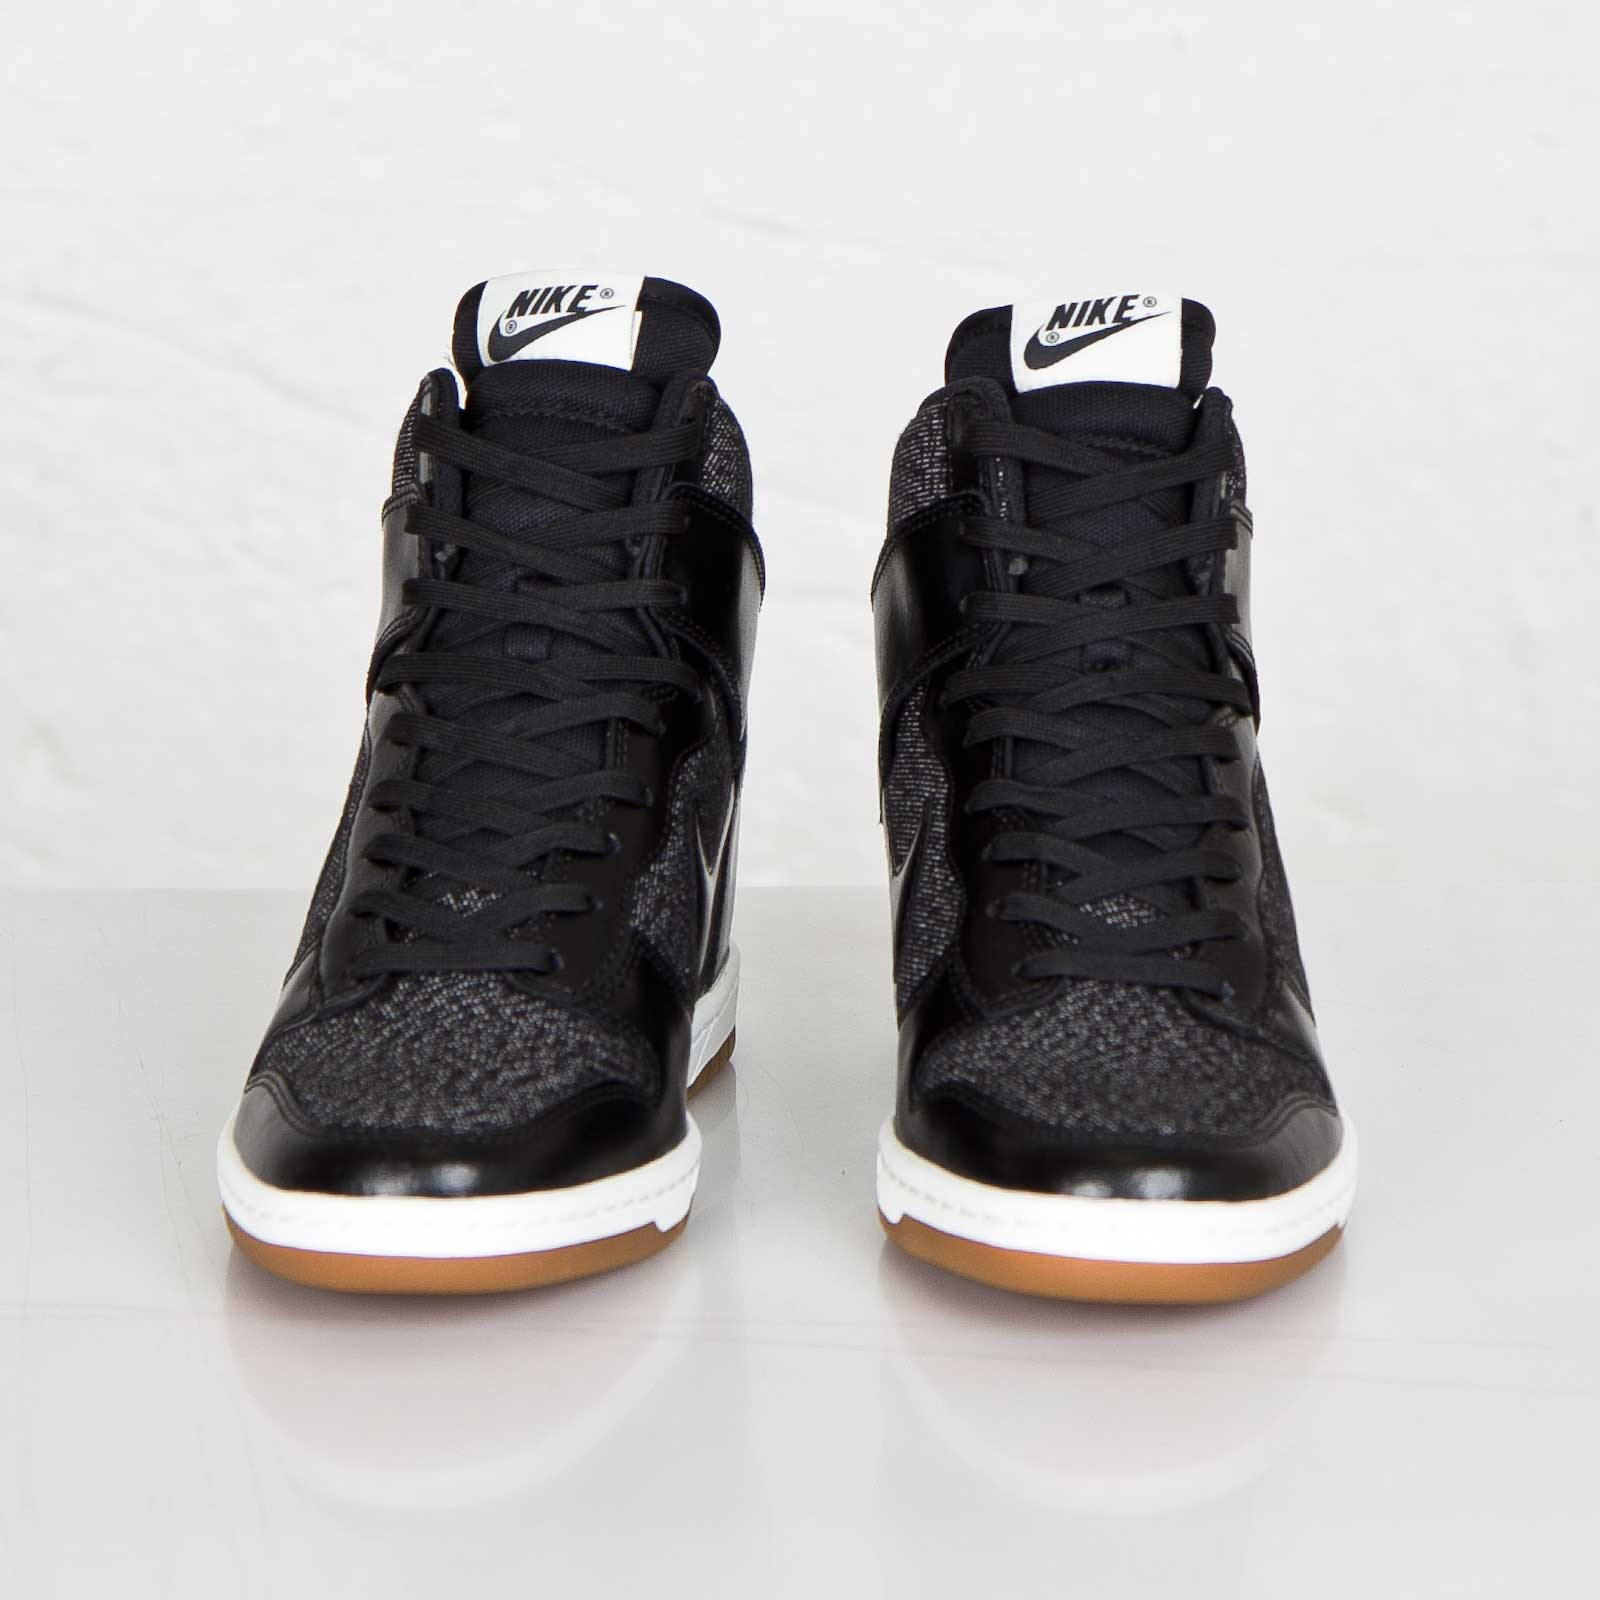 cheap for discount f631c 1af8d Nike Wmns Dunk Sky Hi Essential - 644877-003 - Sneakersnstuff   sneakers    streetwear online since 1999